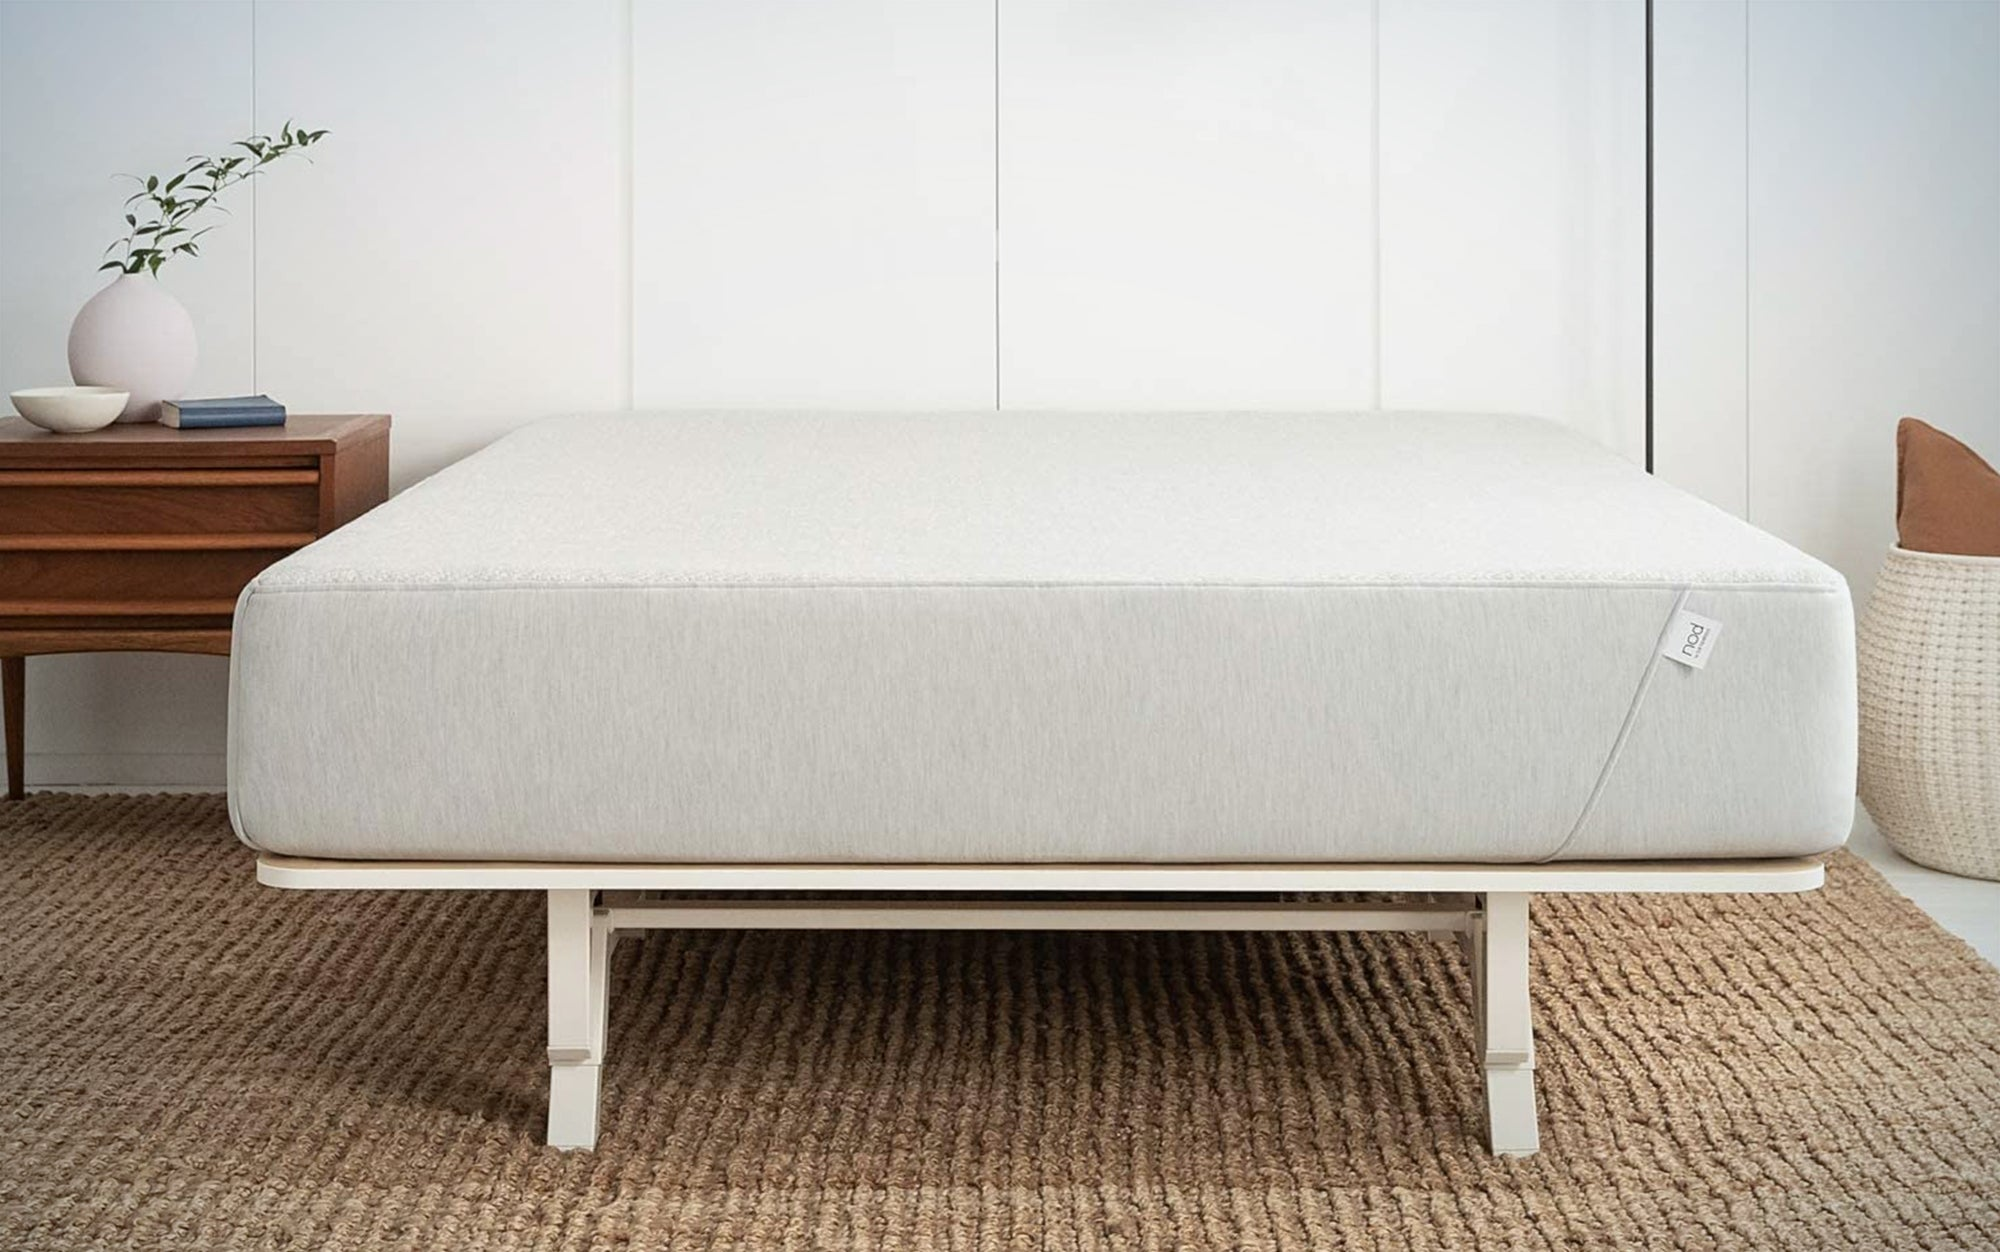 Nod Hybrid by Tuft & Needle, Adaptive Foam and Innerspring 10-Inch Mattress is one of the best mattresses for durability.